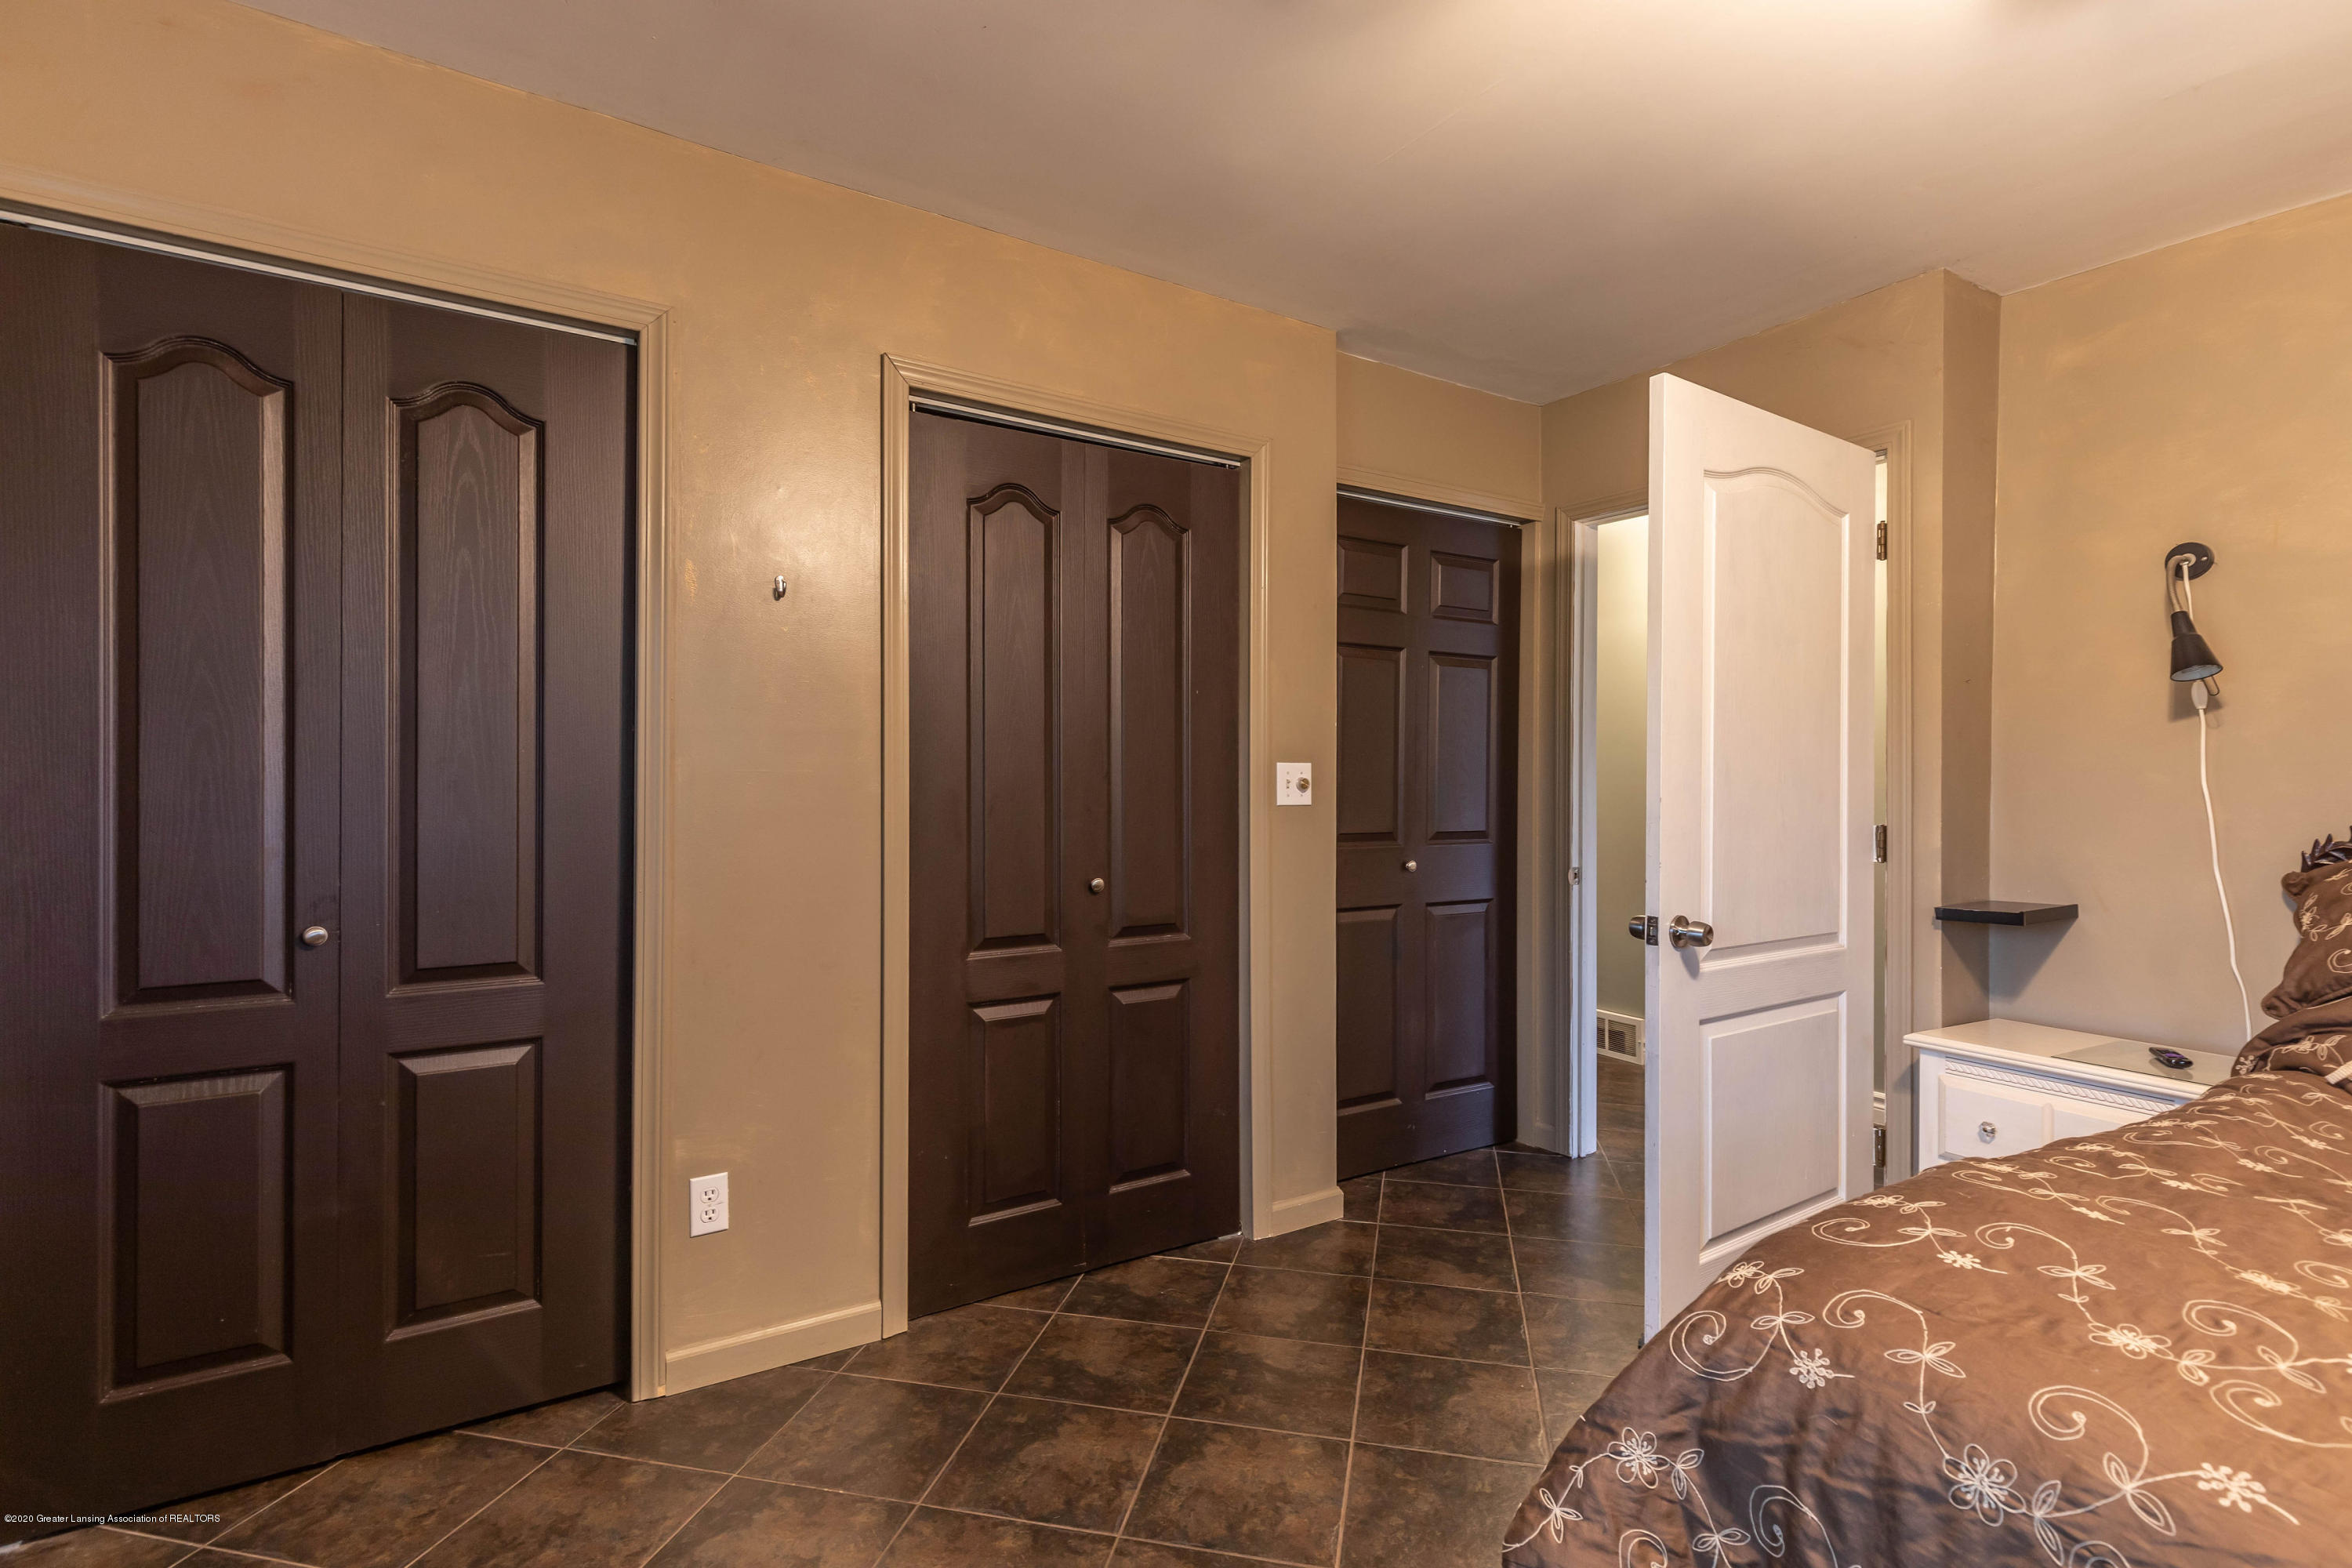 5189 Pittsburg Rd - pittsdsbed12(1of1) - 22